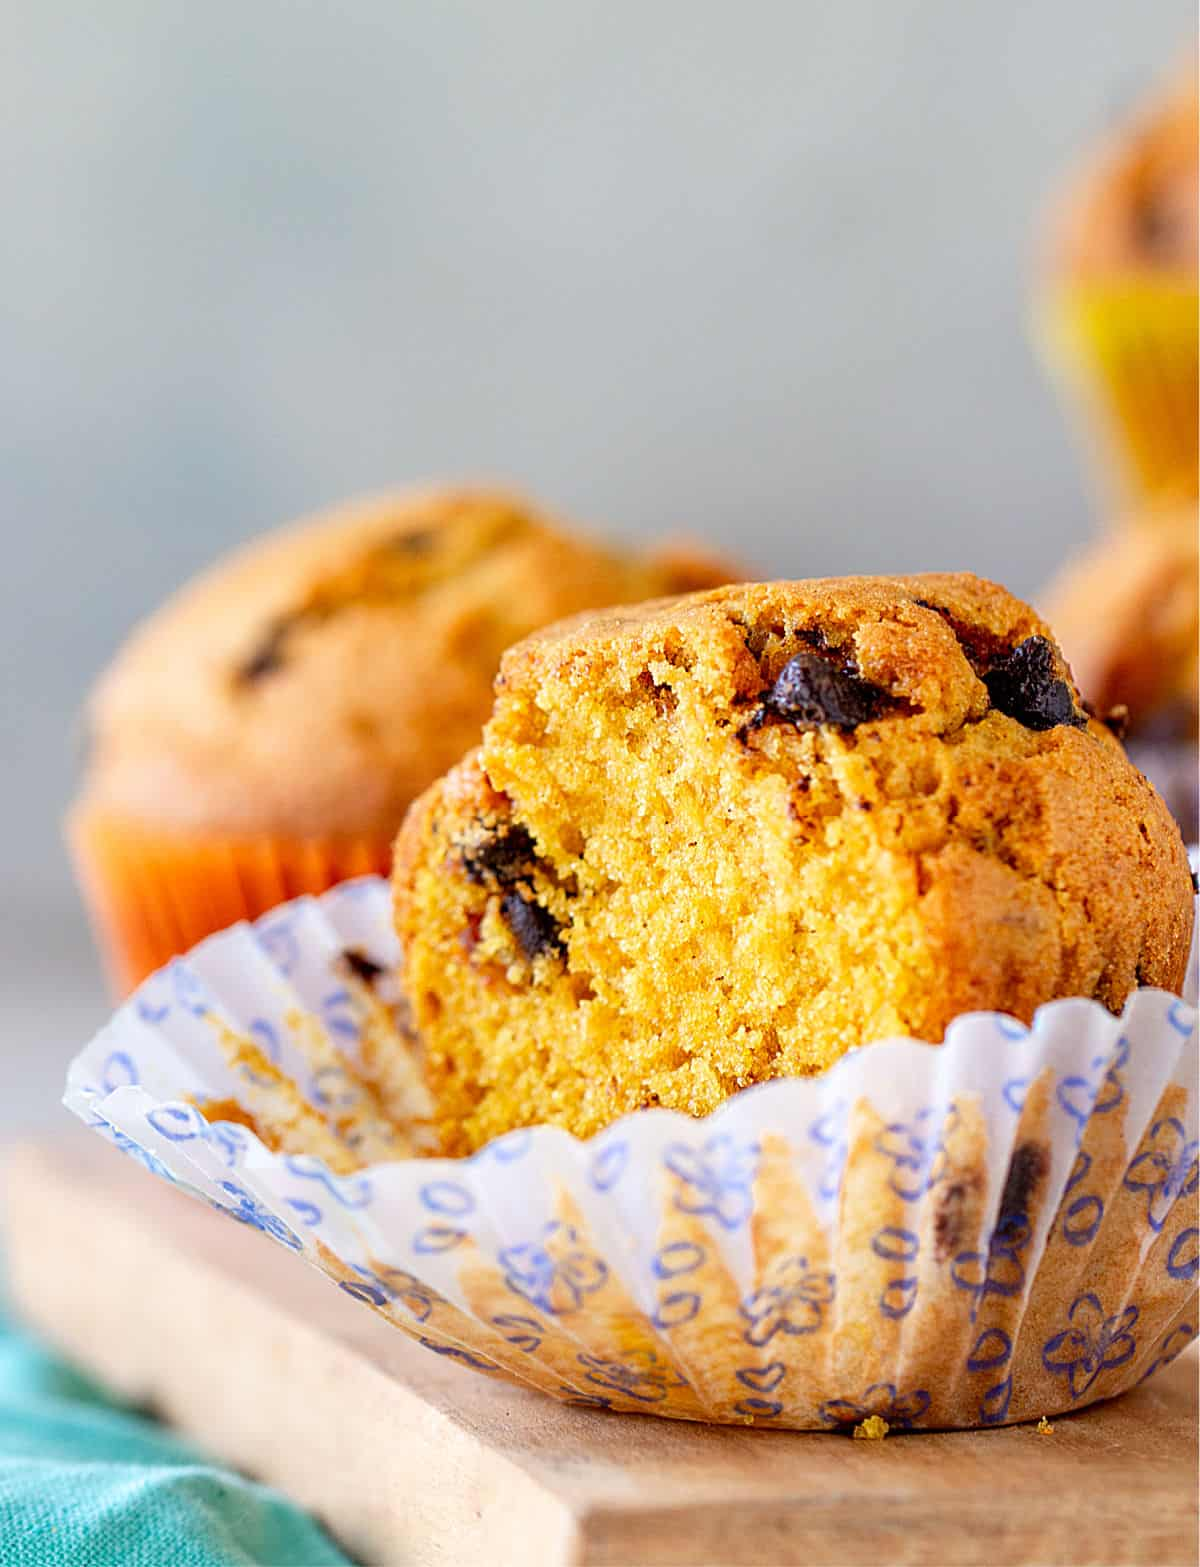 Half pumpkin muffin in opened paper liner on a wooden board